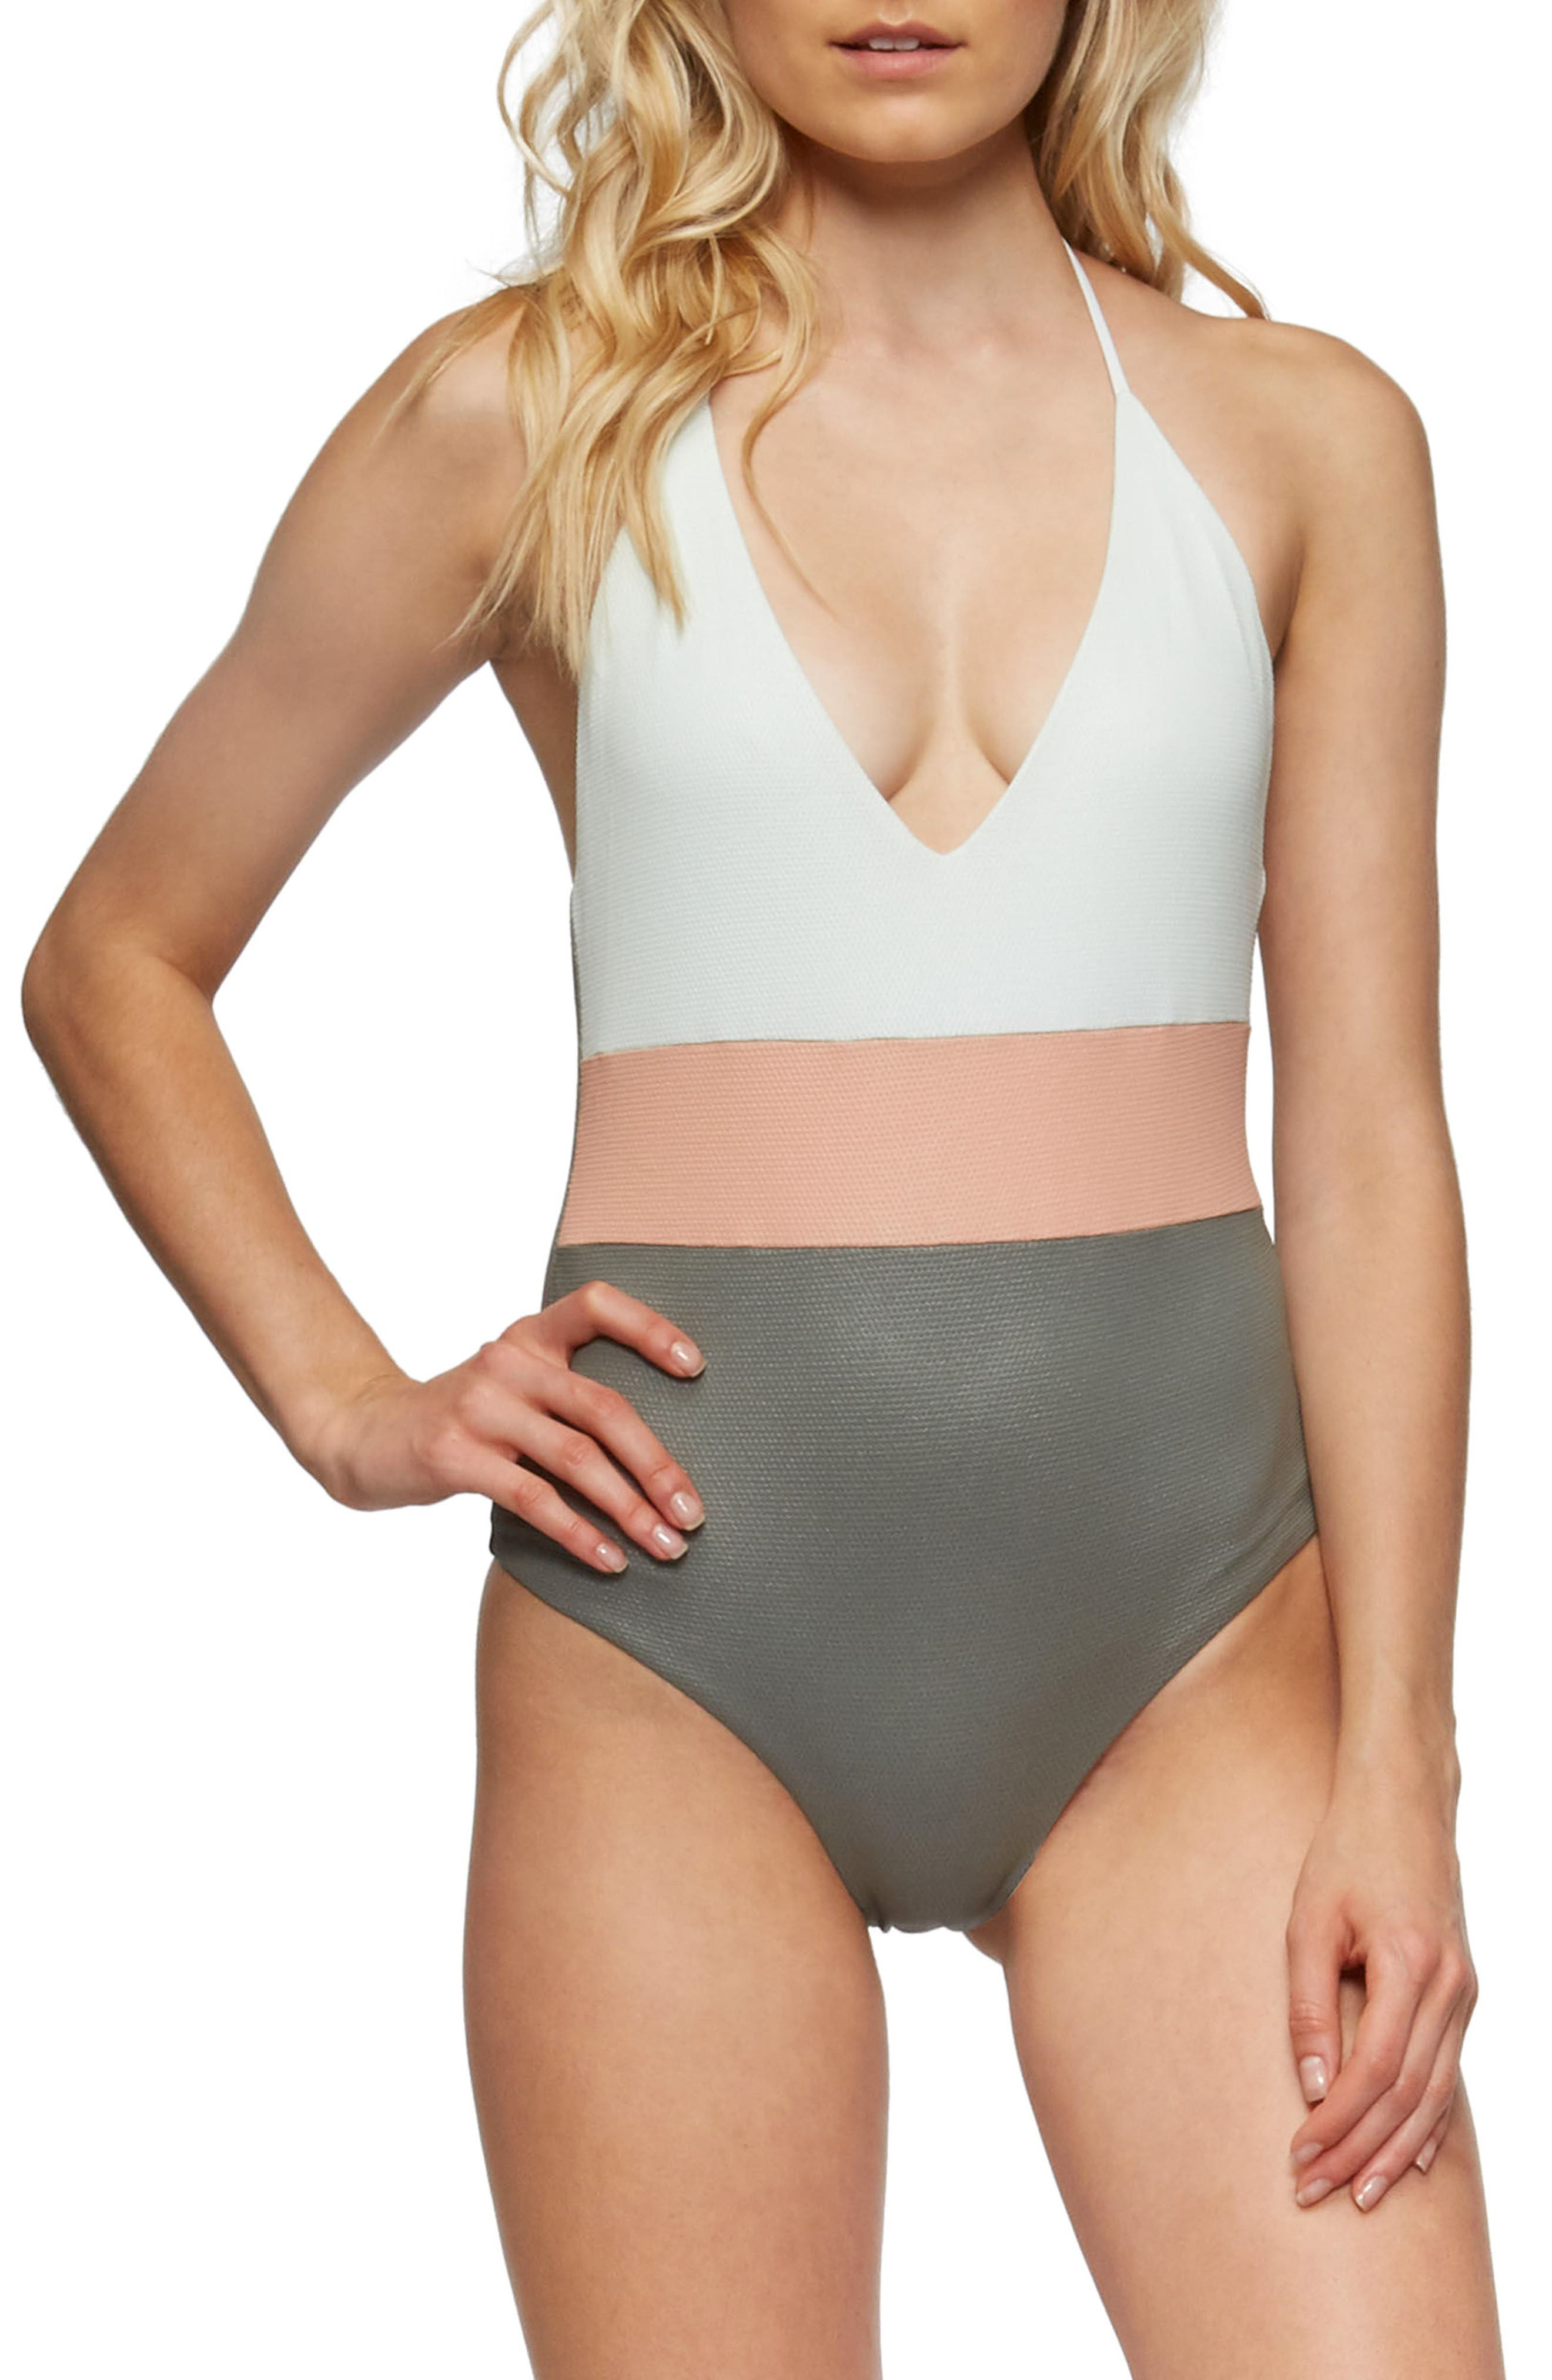 Chase Glossy One-Piece Swimsuit,                             Main thumbnail 1, color,